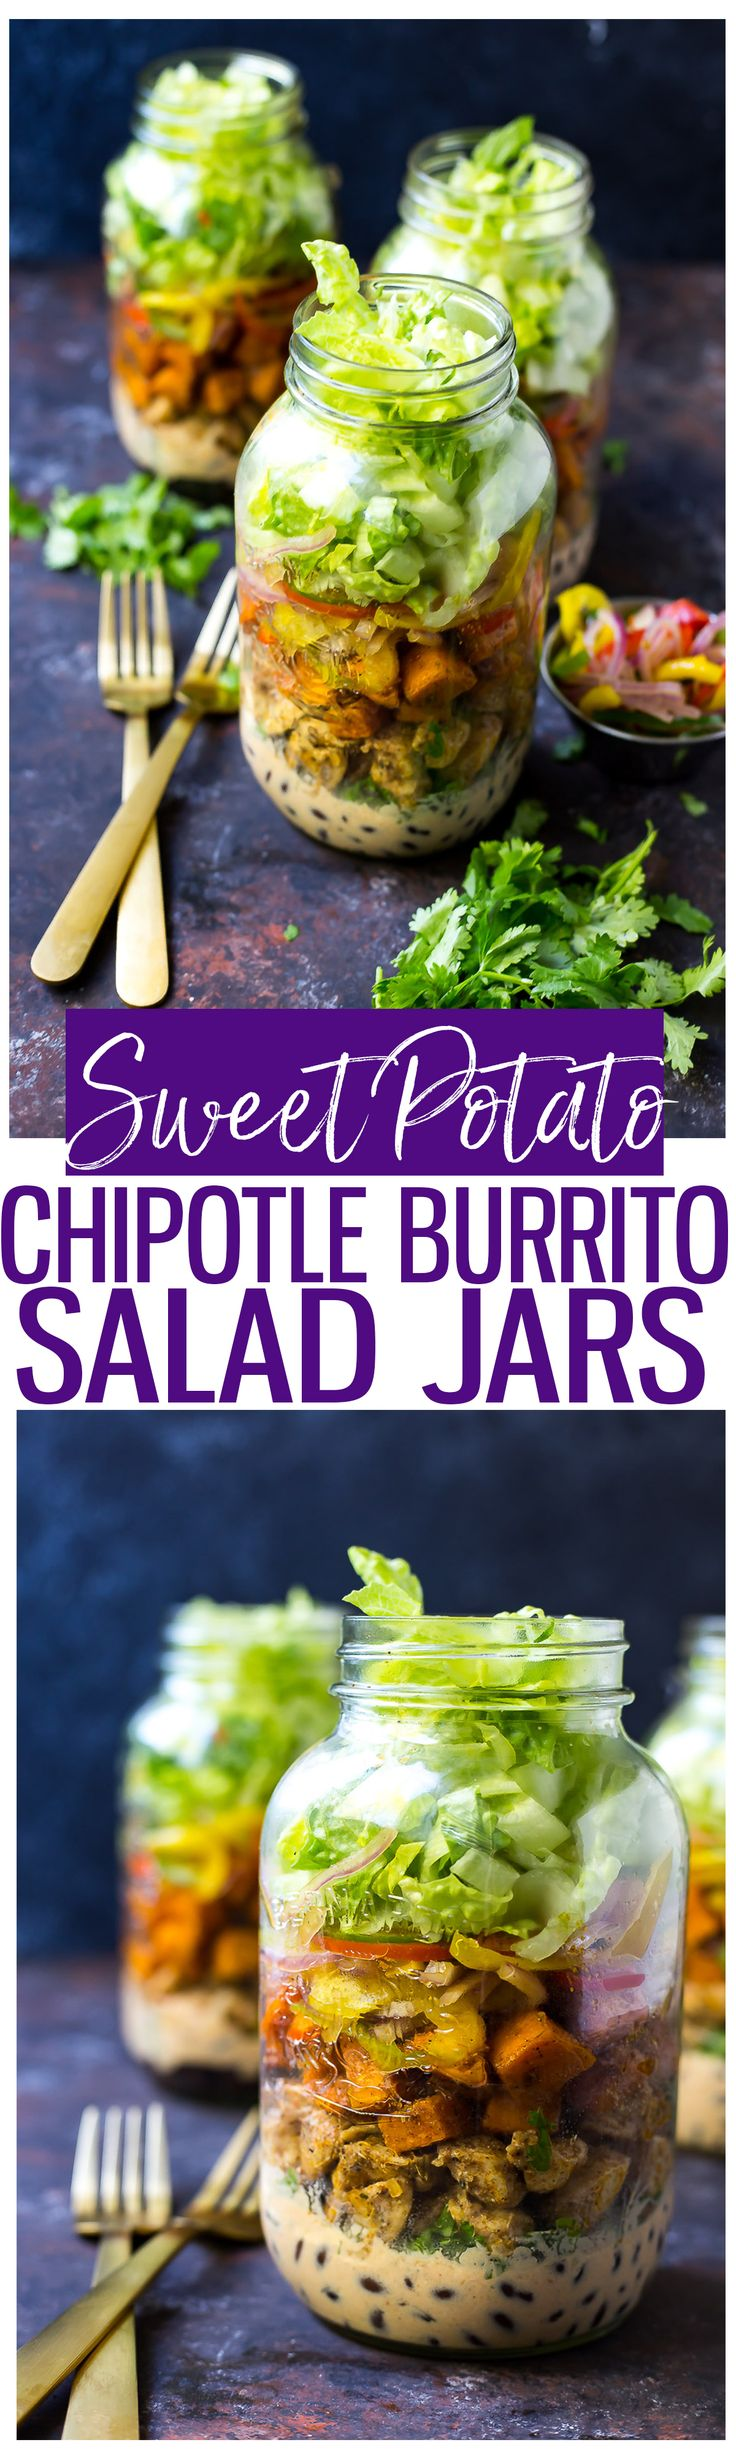 Sweet Potato Chipotle Chicken Burrito Jars are full of delicious southwest flavours and protein – they're also a tasty low-carb lunch you can take with you on-the-go!